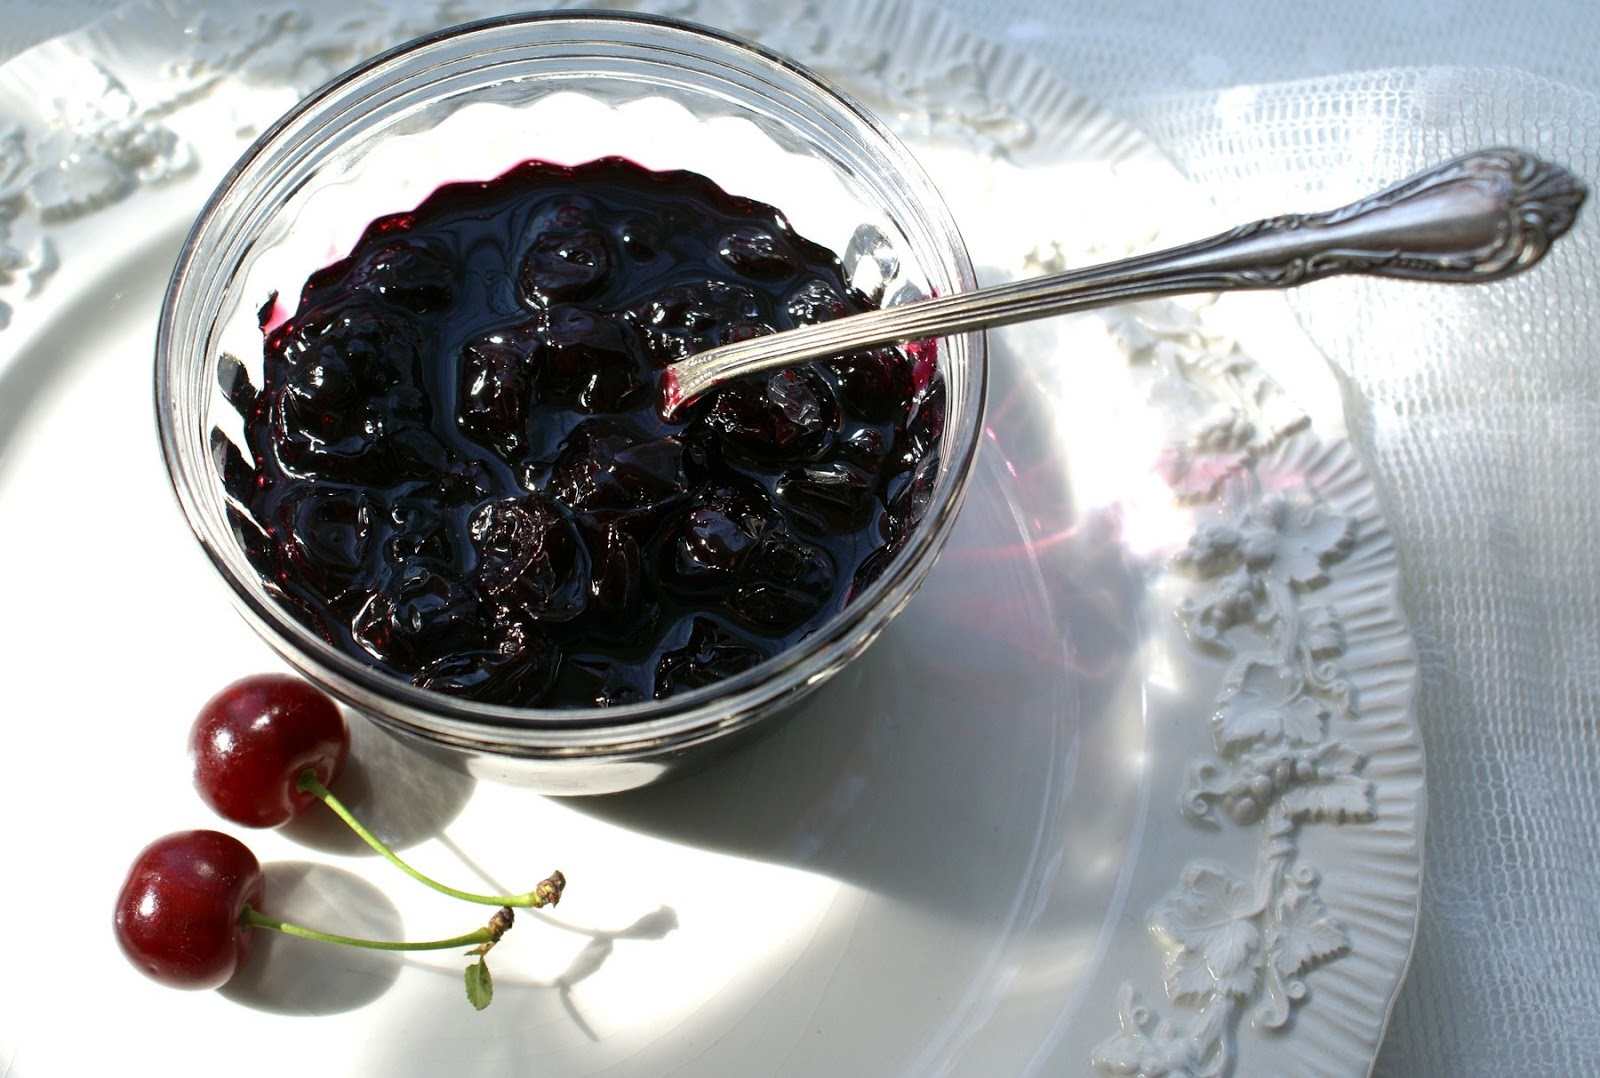 simple sour cherry jam containing only sour cherries and sugar